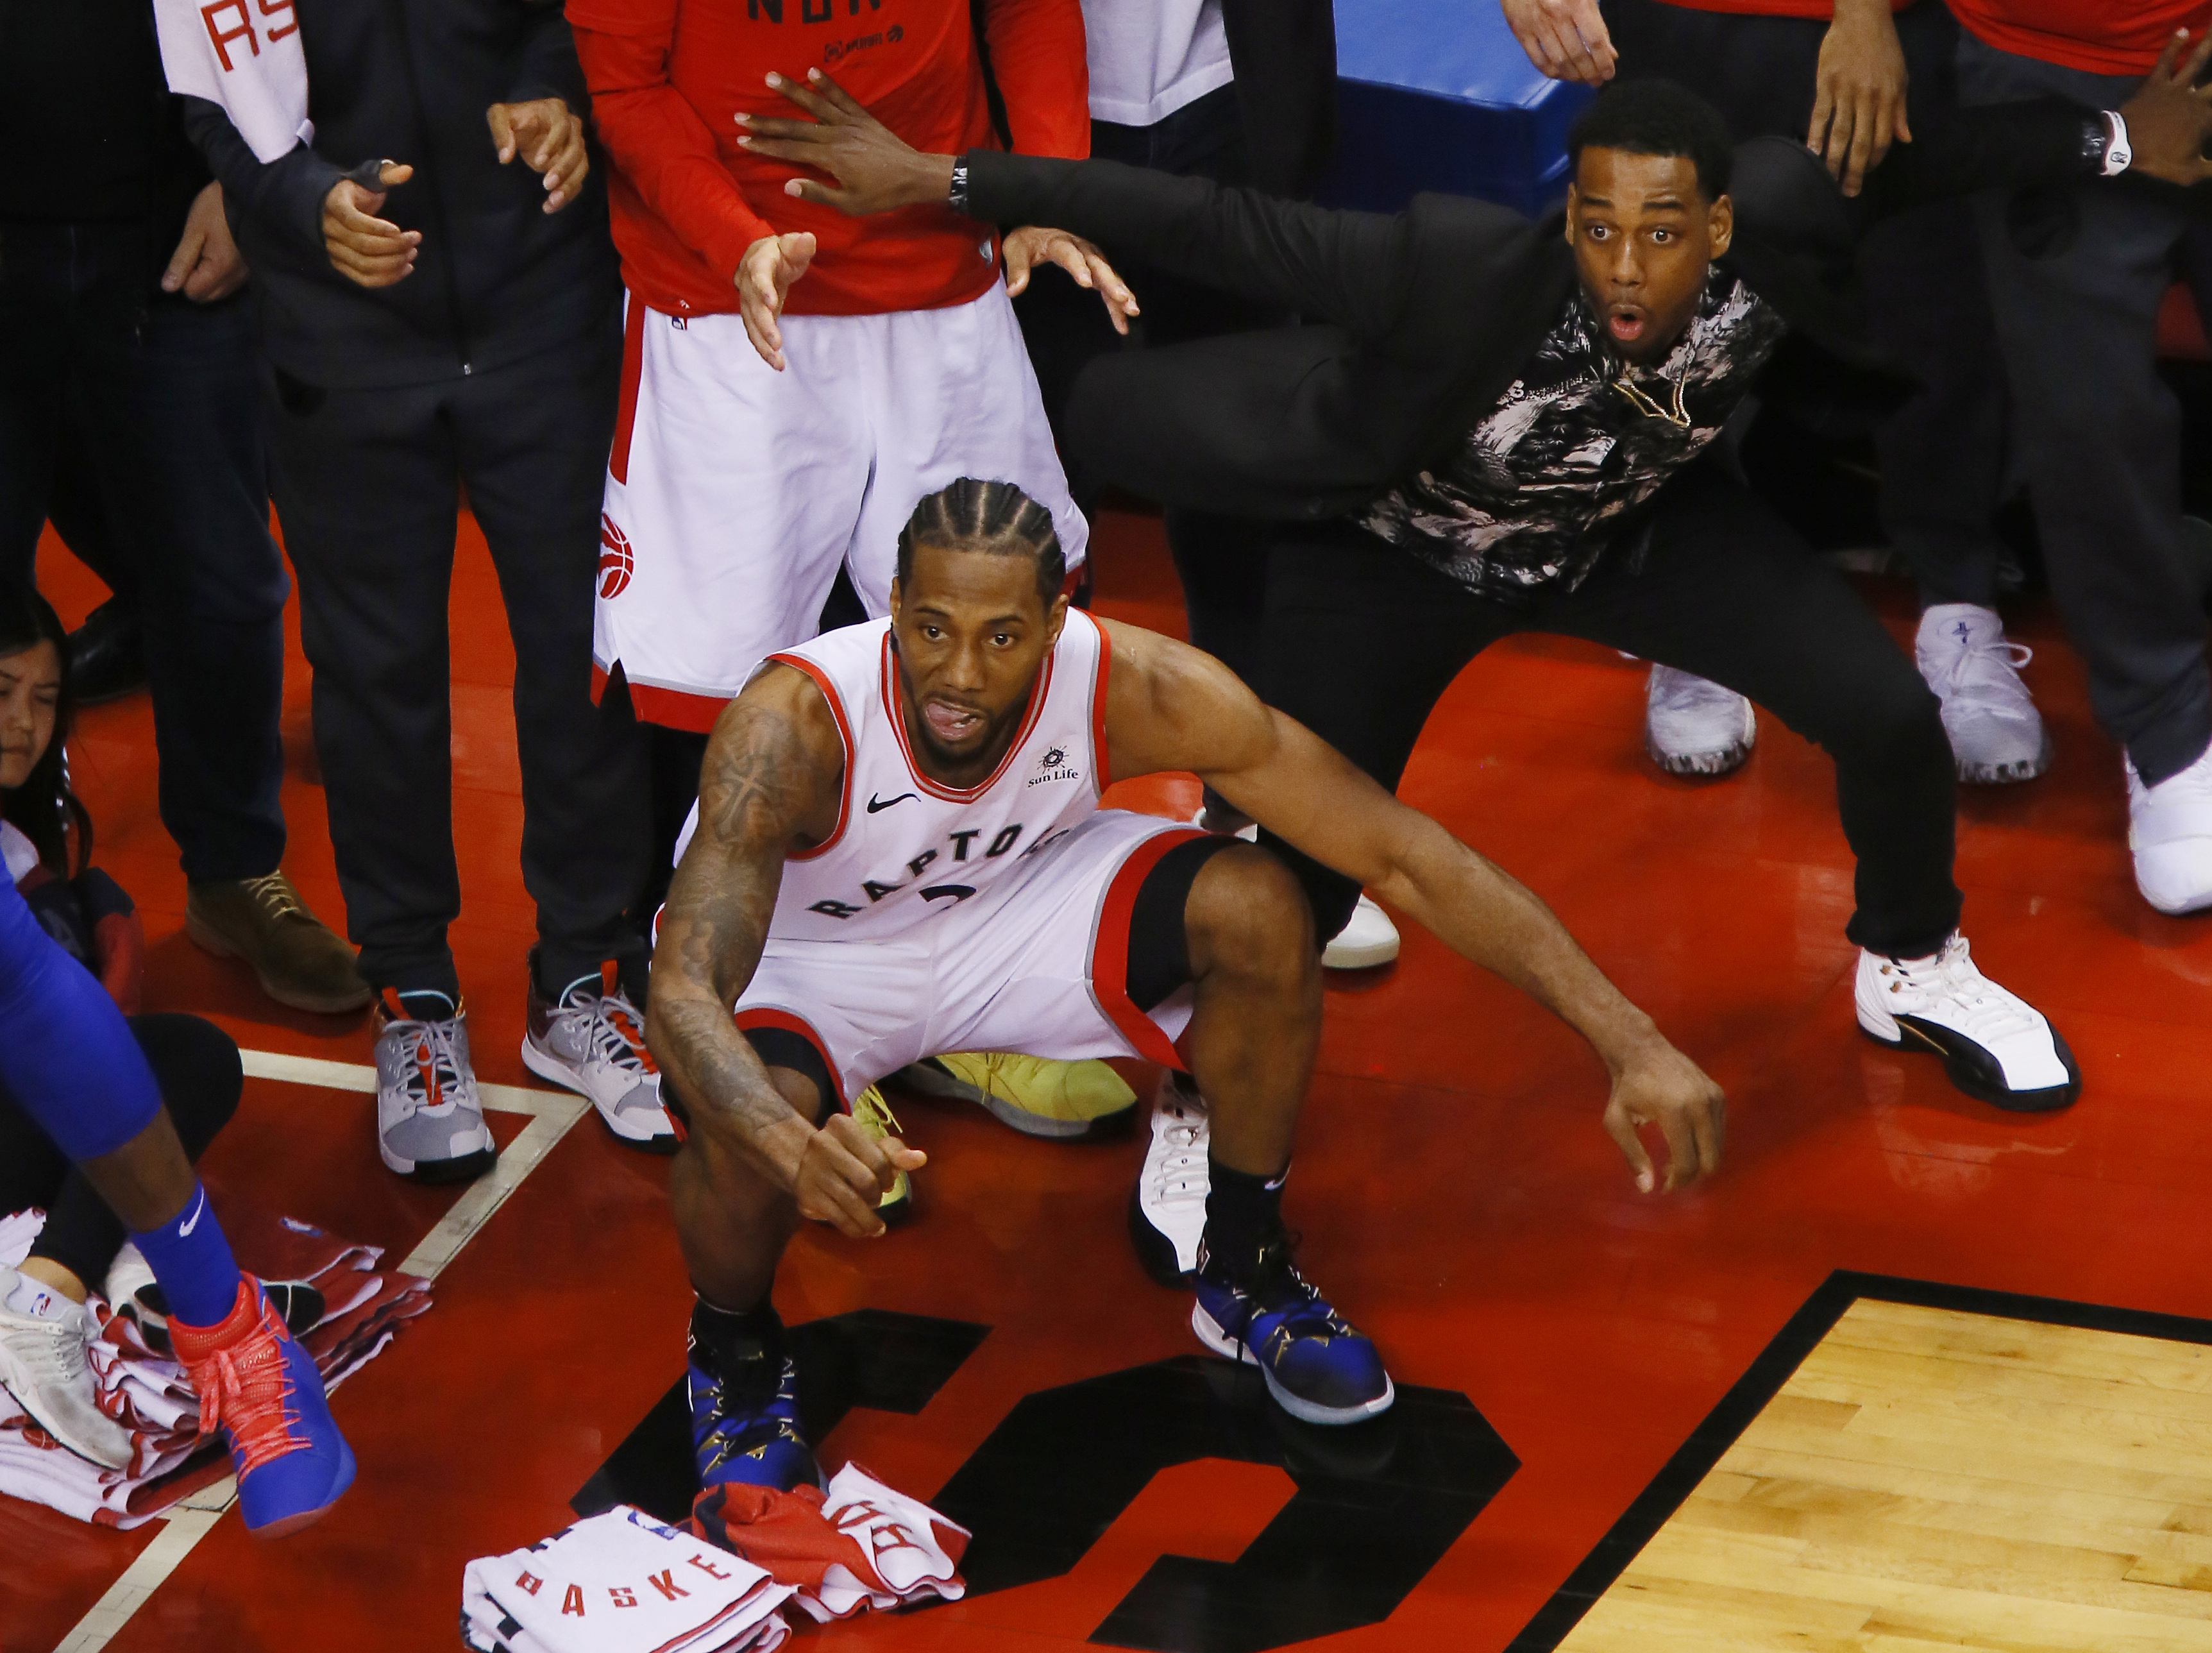 Each Raptors win makes it more likely Kawhi Leonard stays in Toronto, which would be disastrous for Celtics